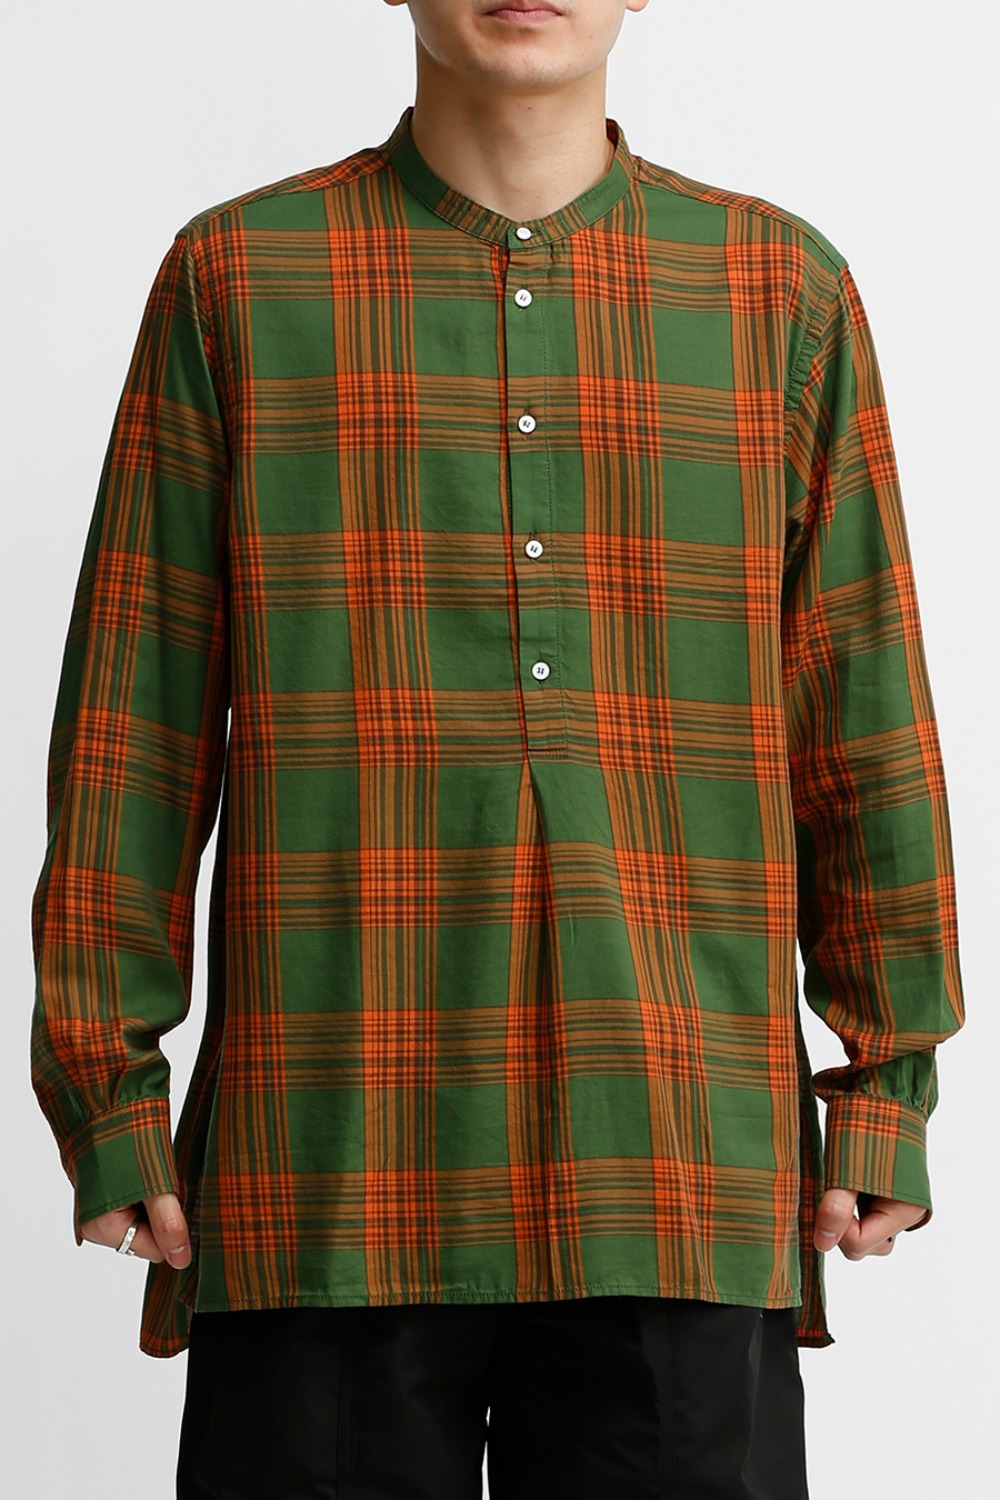 TUNIC SHIRT / GREEN & ORANGE CHECK